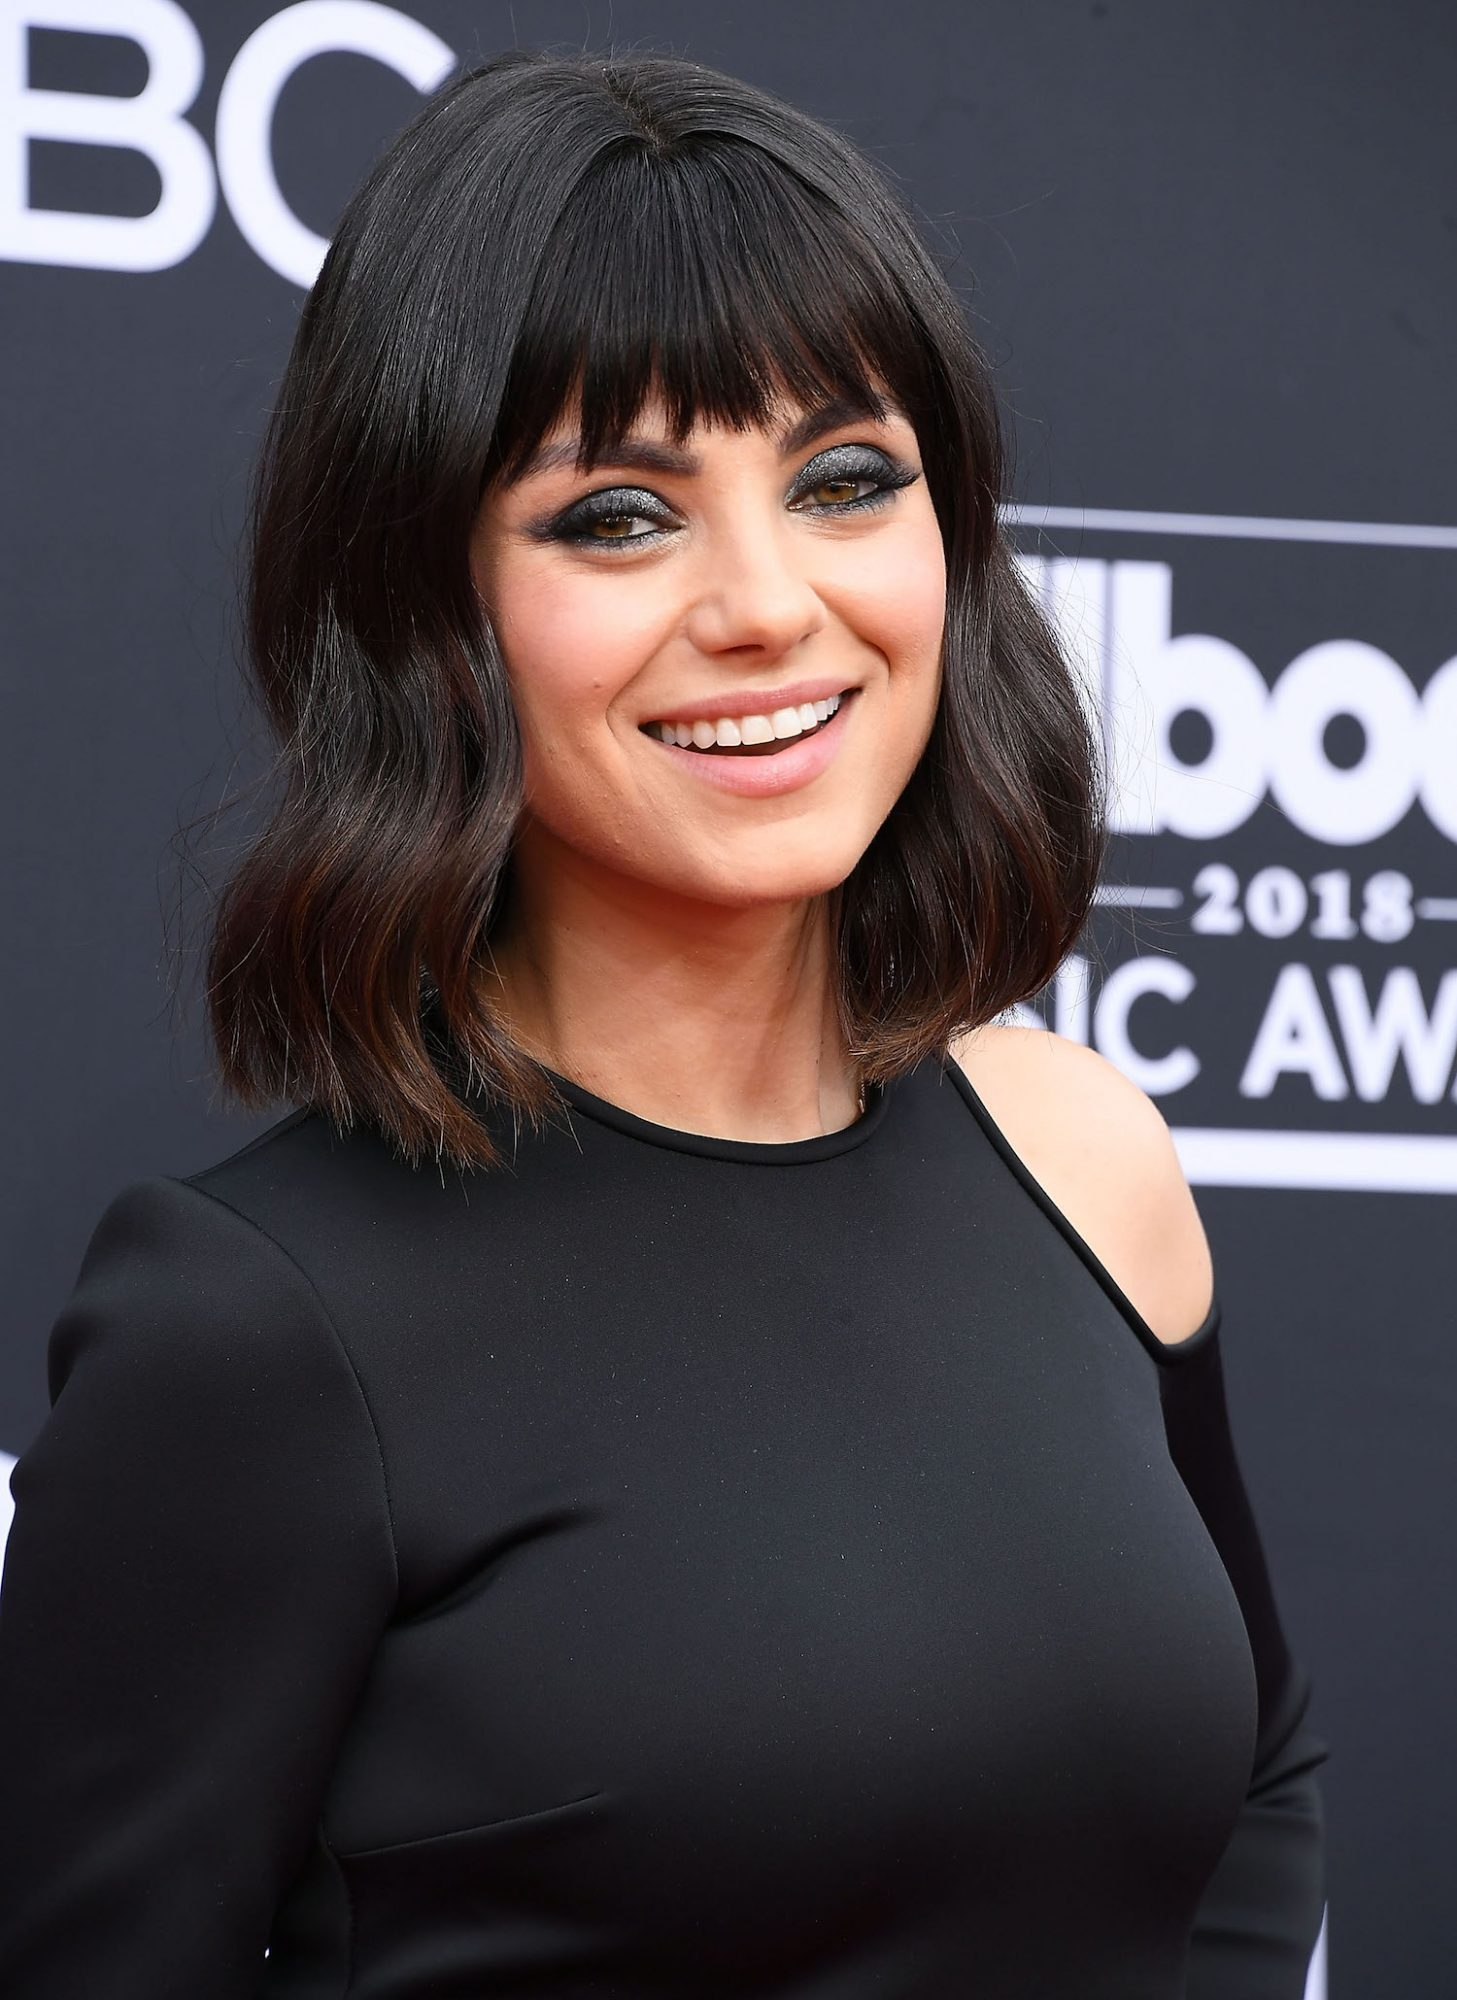 Mila Kunis With Short Hair and Bangs Trendy Hairstyle